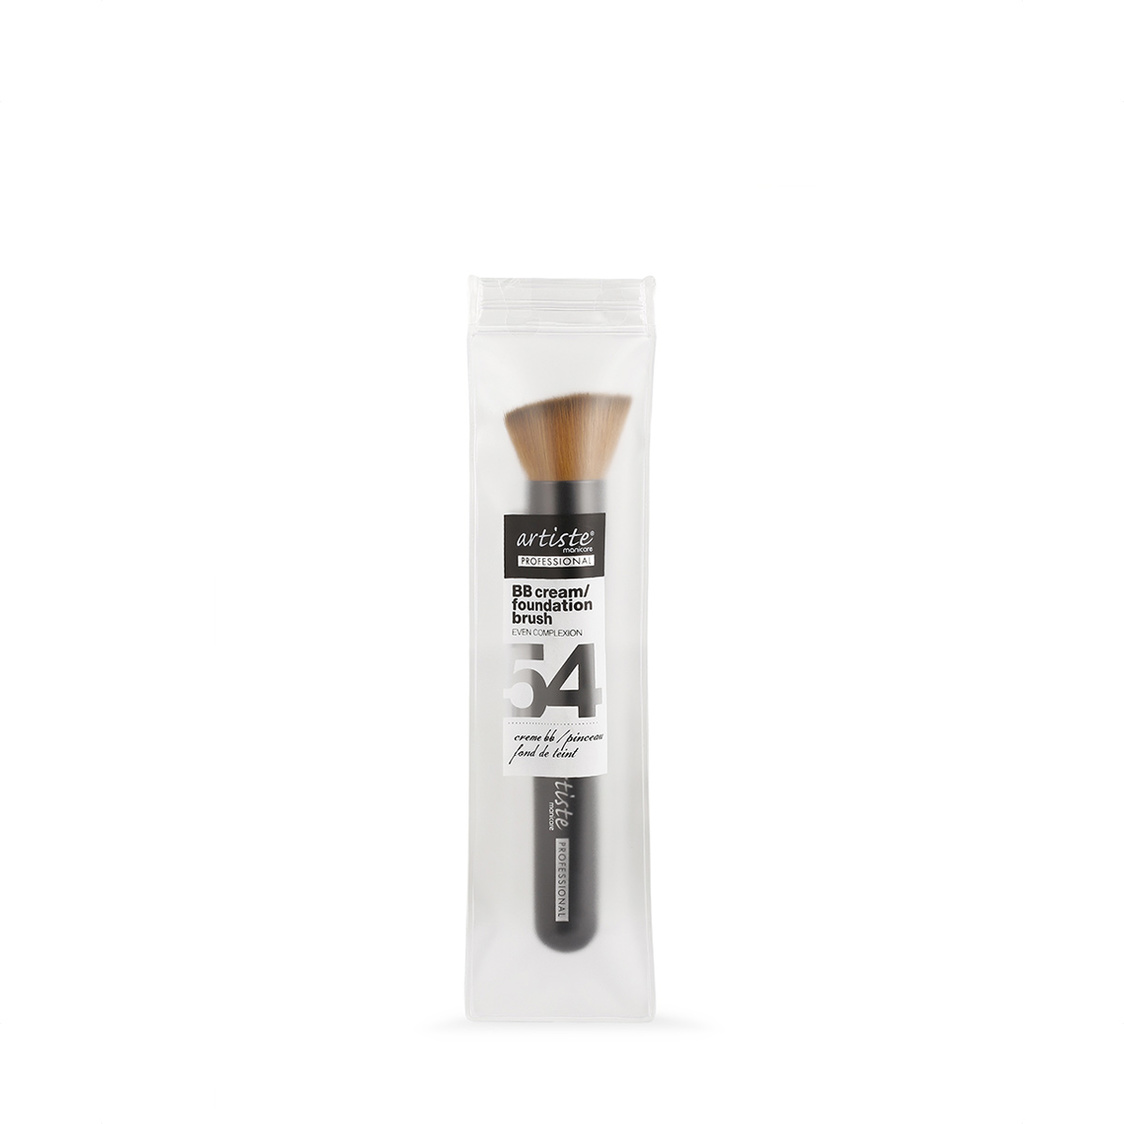 Manicare Artiste BB Cream Foundation Brush 54